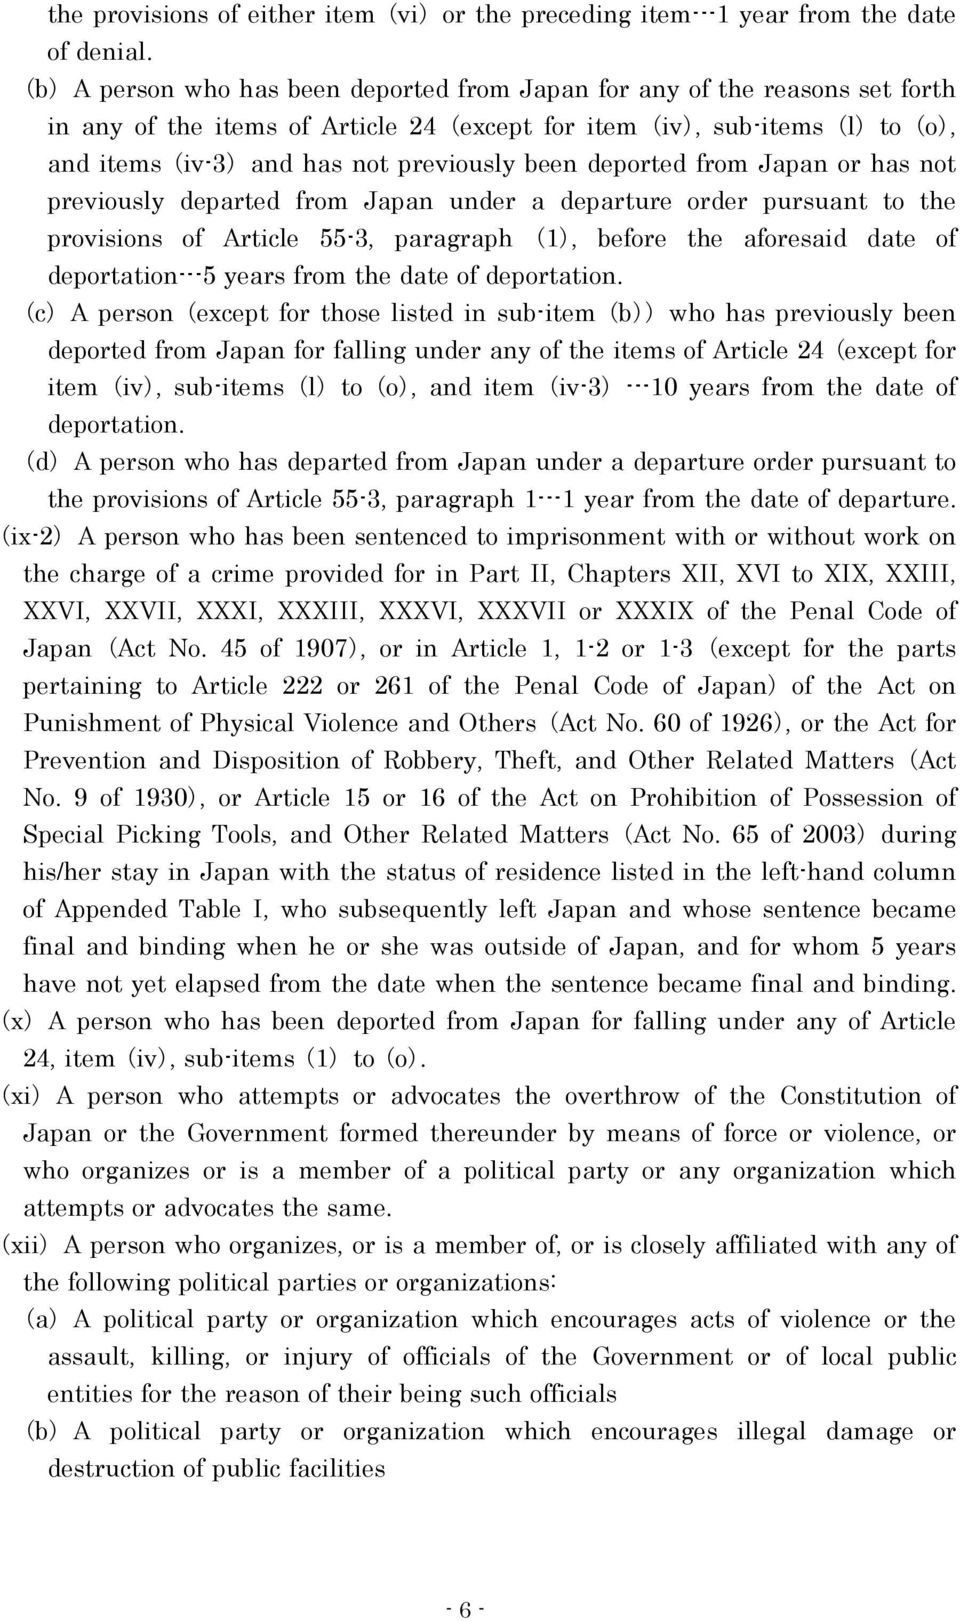 previously been deported from Japan or has not previously departed from Japan under a departure order pursuant to the provisions of Article 55-3, paragraph ( 1 ), before the aforesaid date of